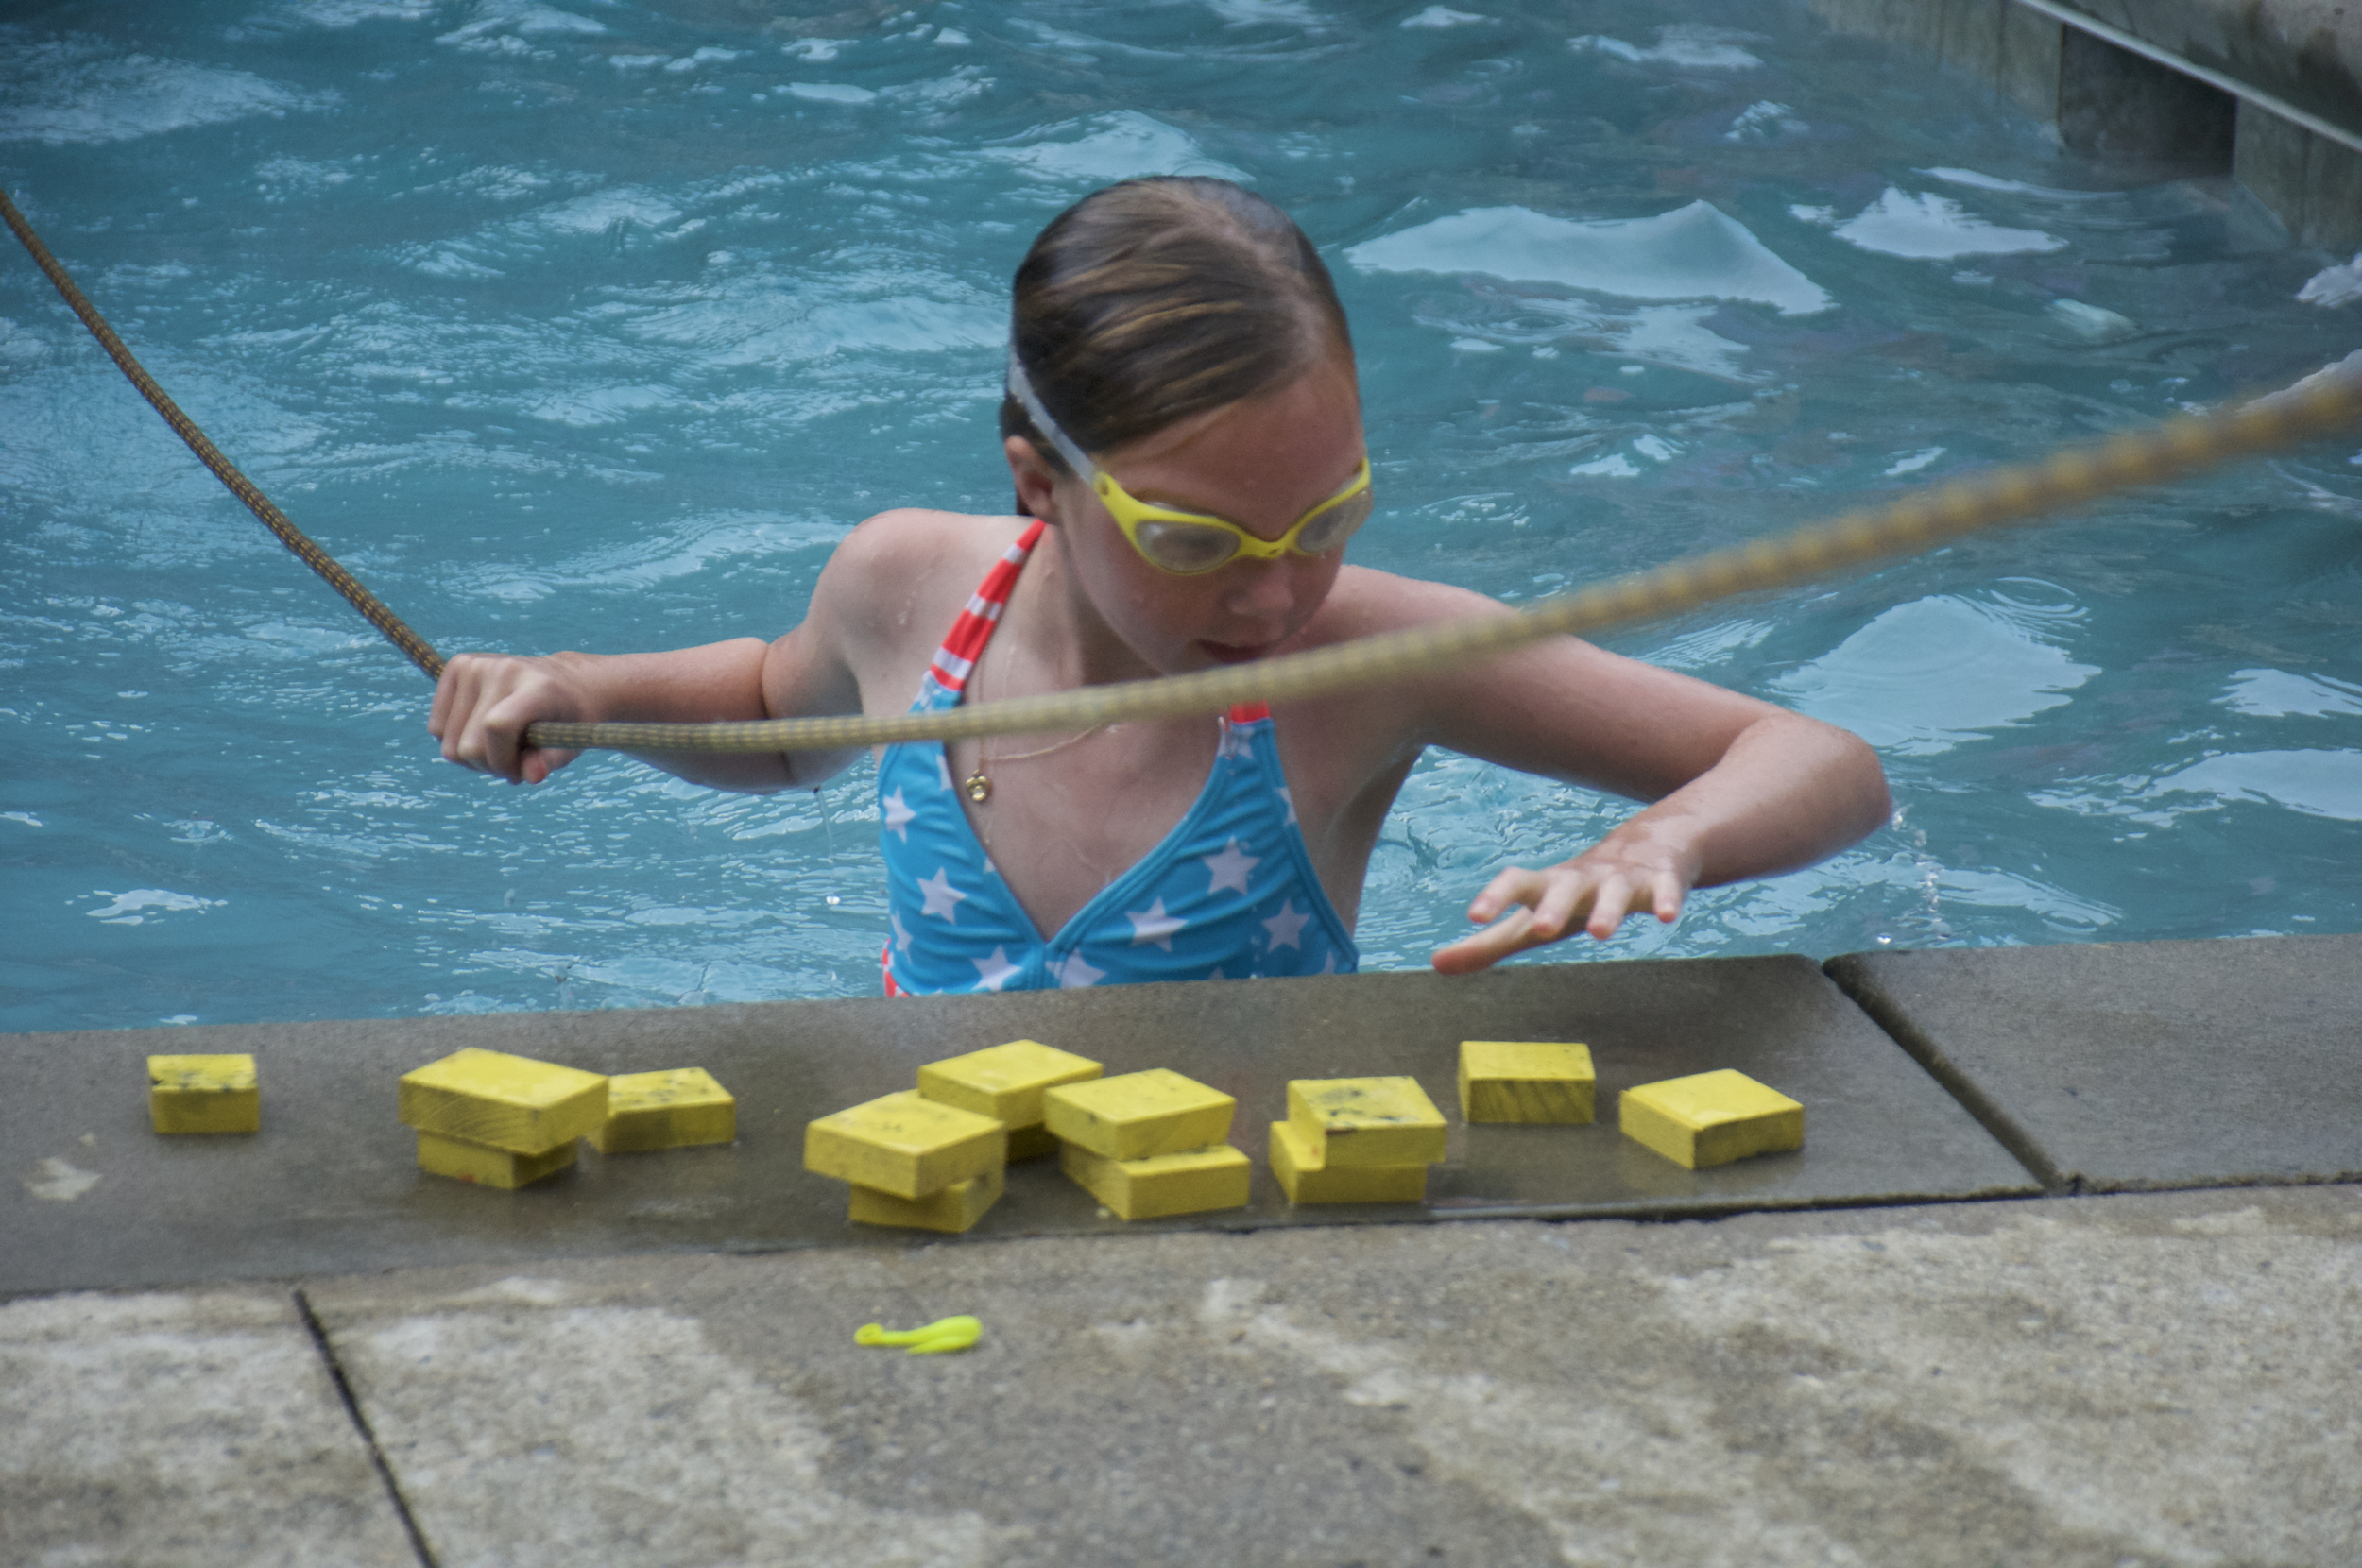 Survivor games at the pool.